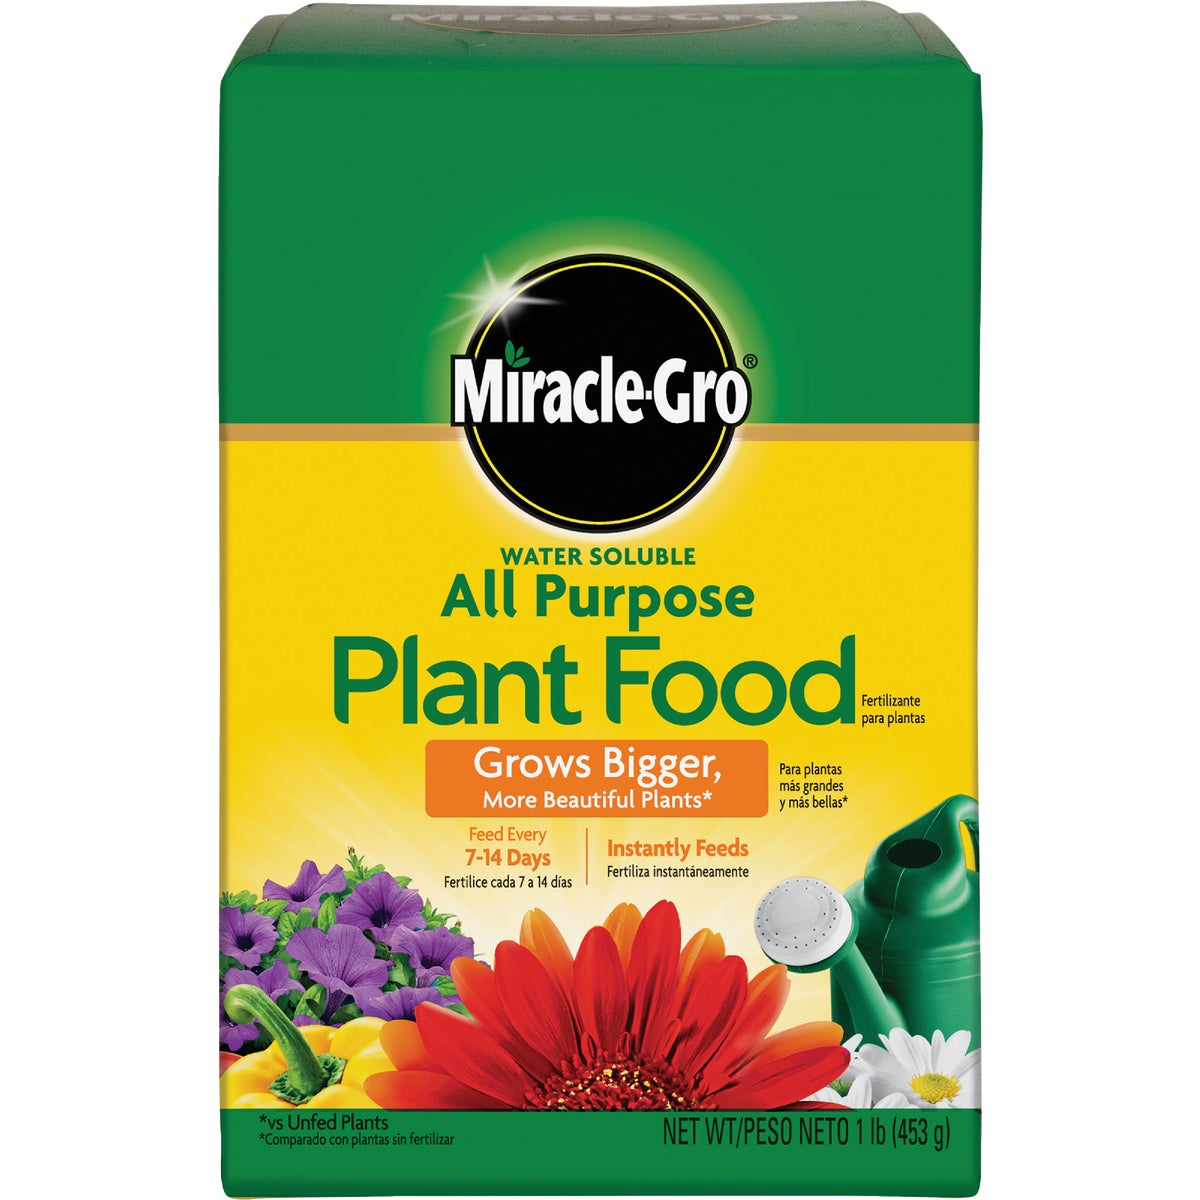 1LB MIR GRO PLANT FOOD - 160101 by Scotts Company